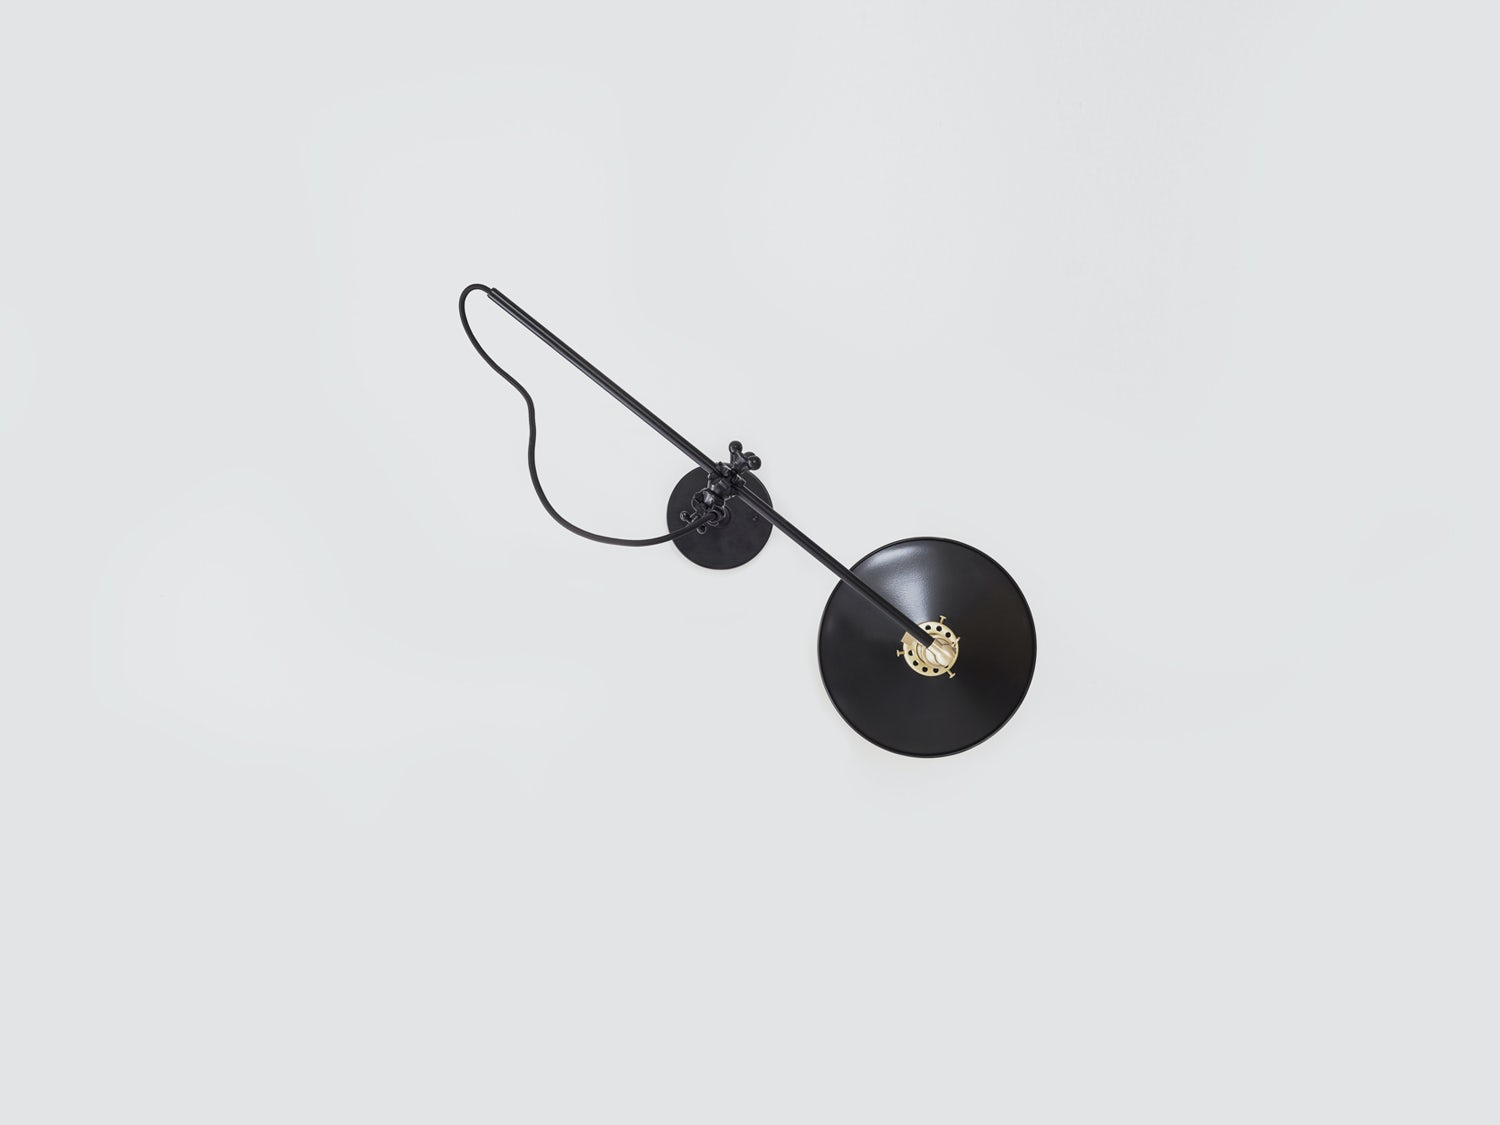 gallery image for Wall Lamp